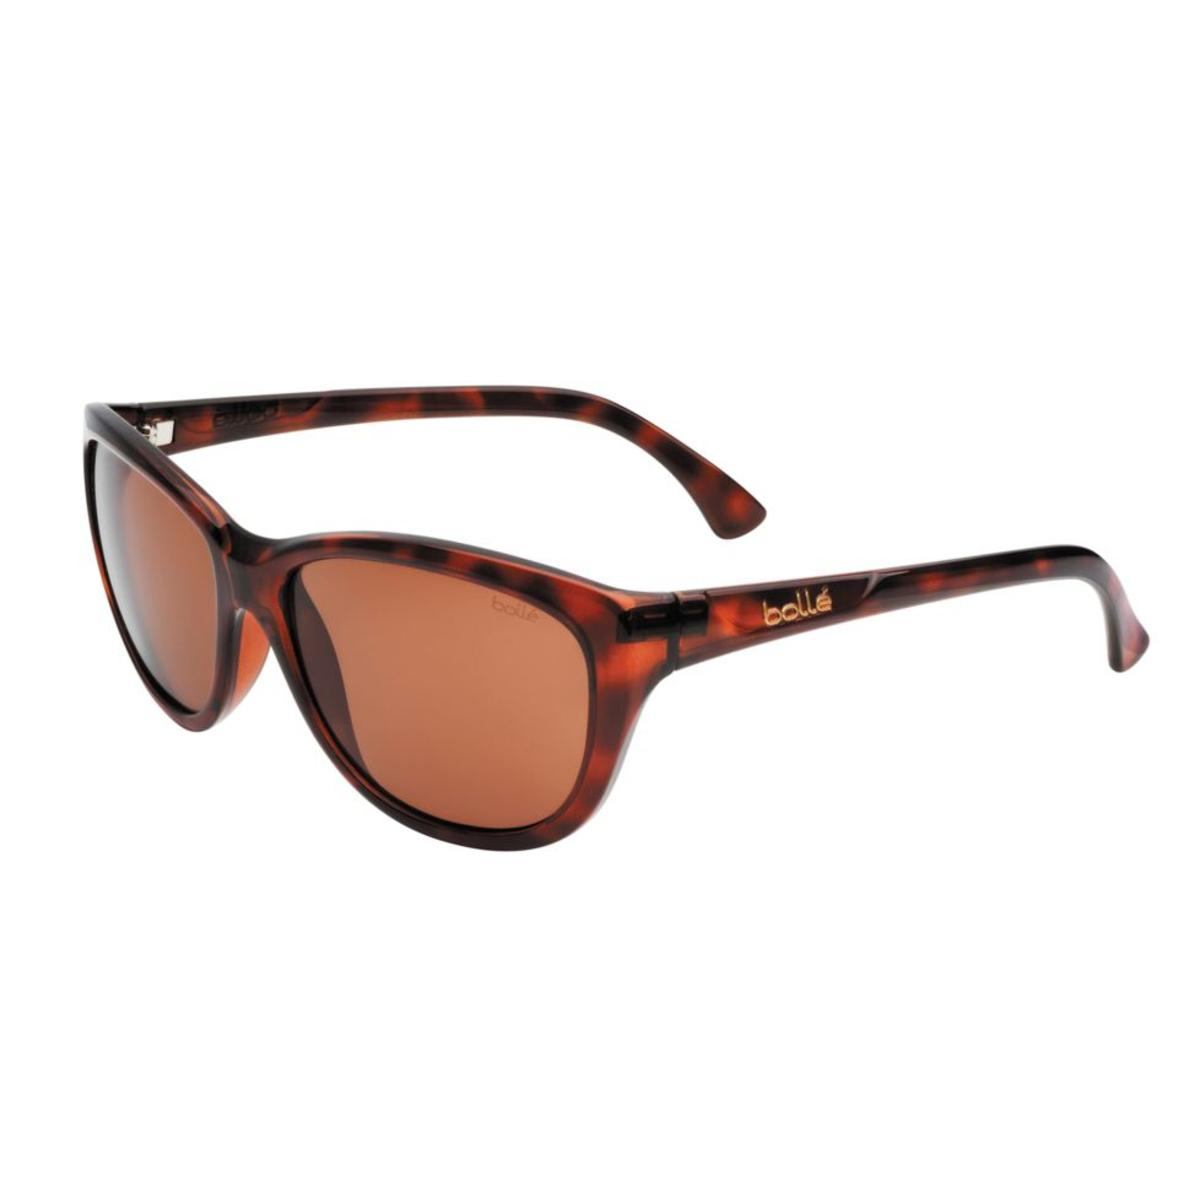 Bolle Greta Women's Sunglasses